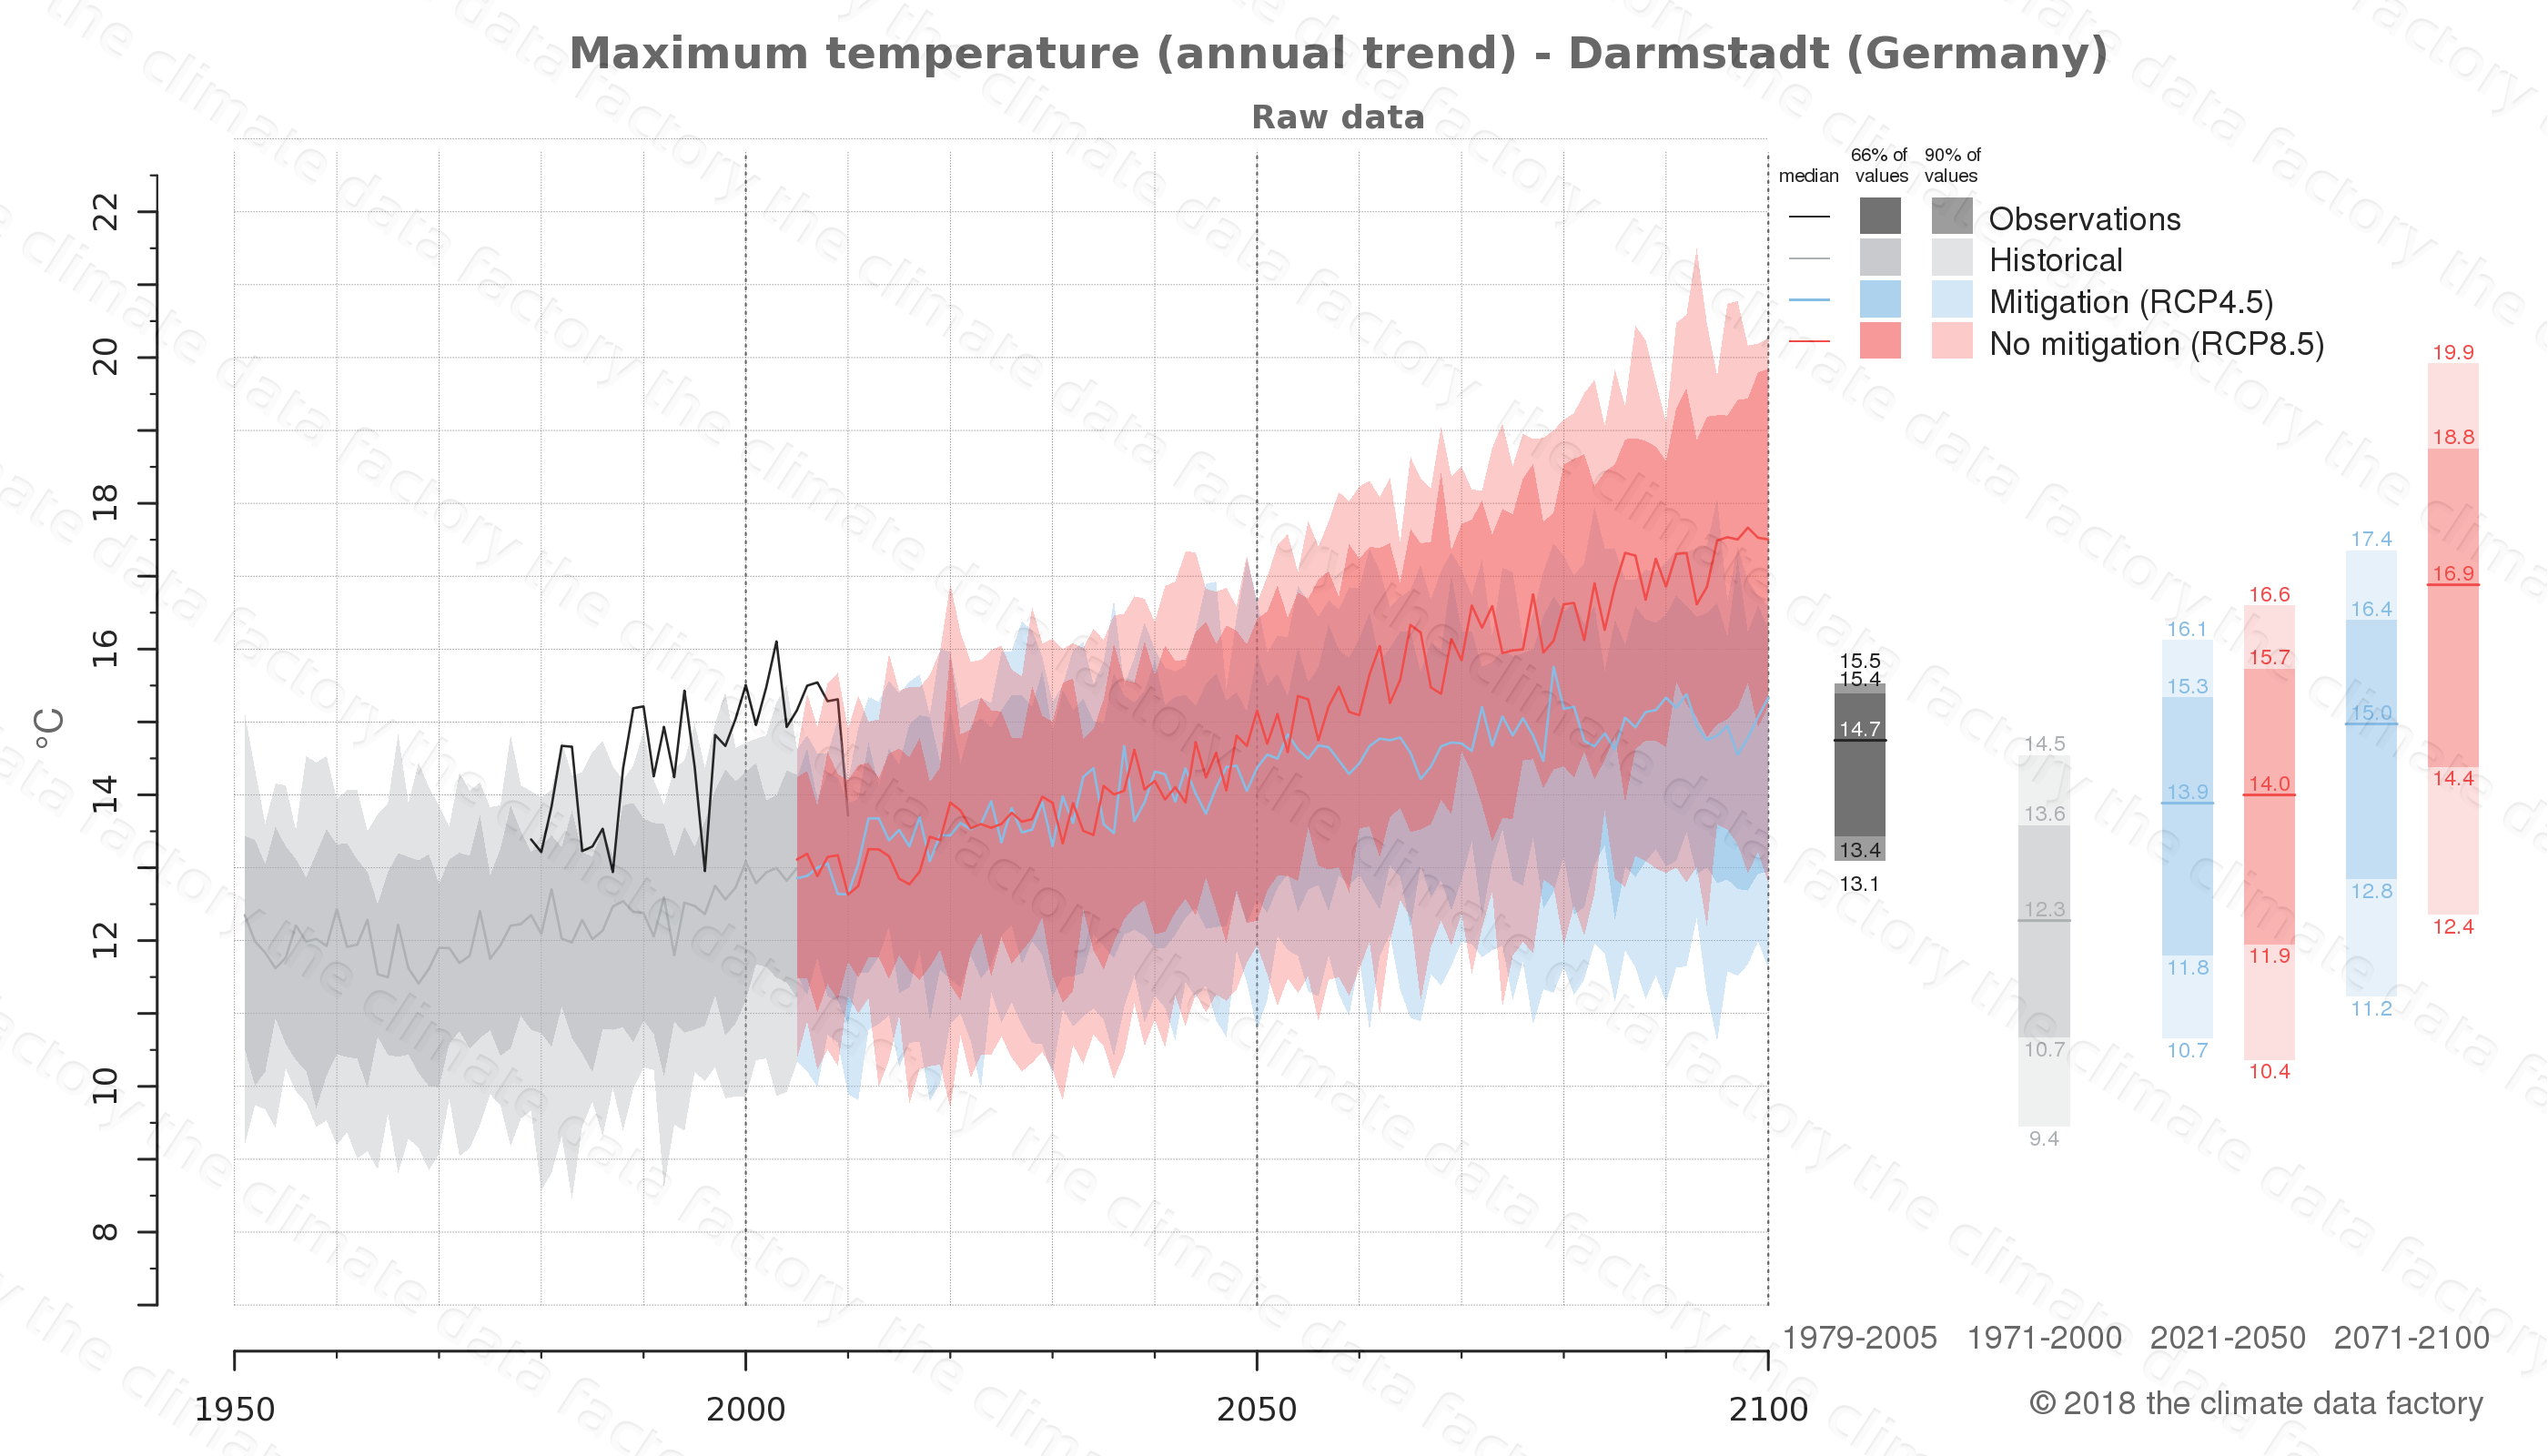 climate change data policy adaptation climate graph city data maximum-temperature darmstadt germany